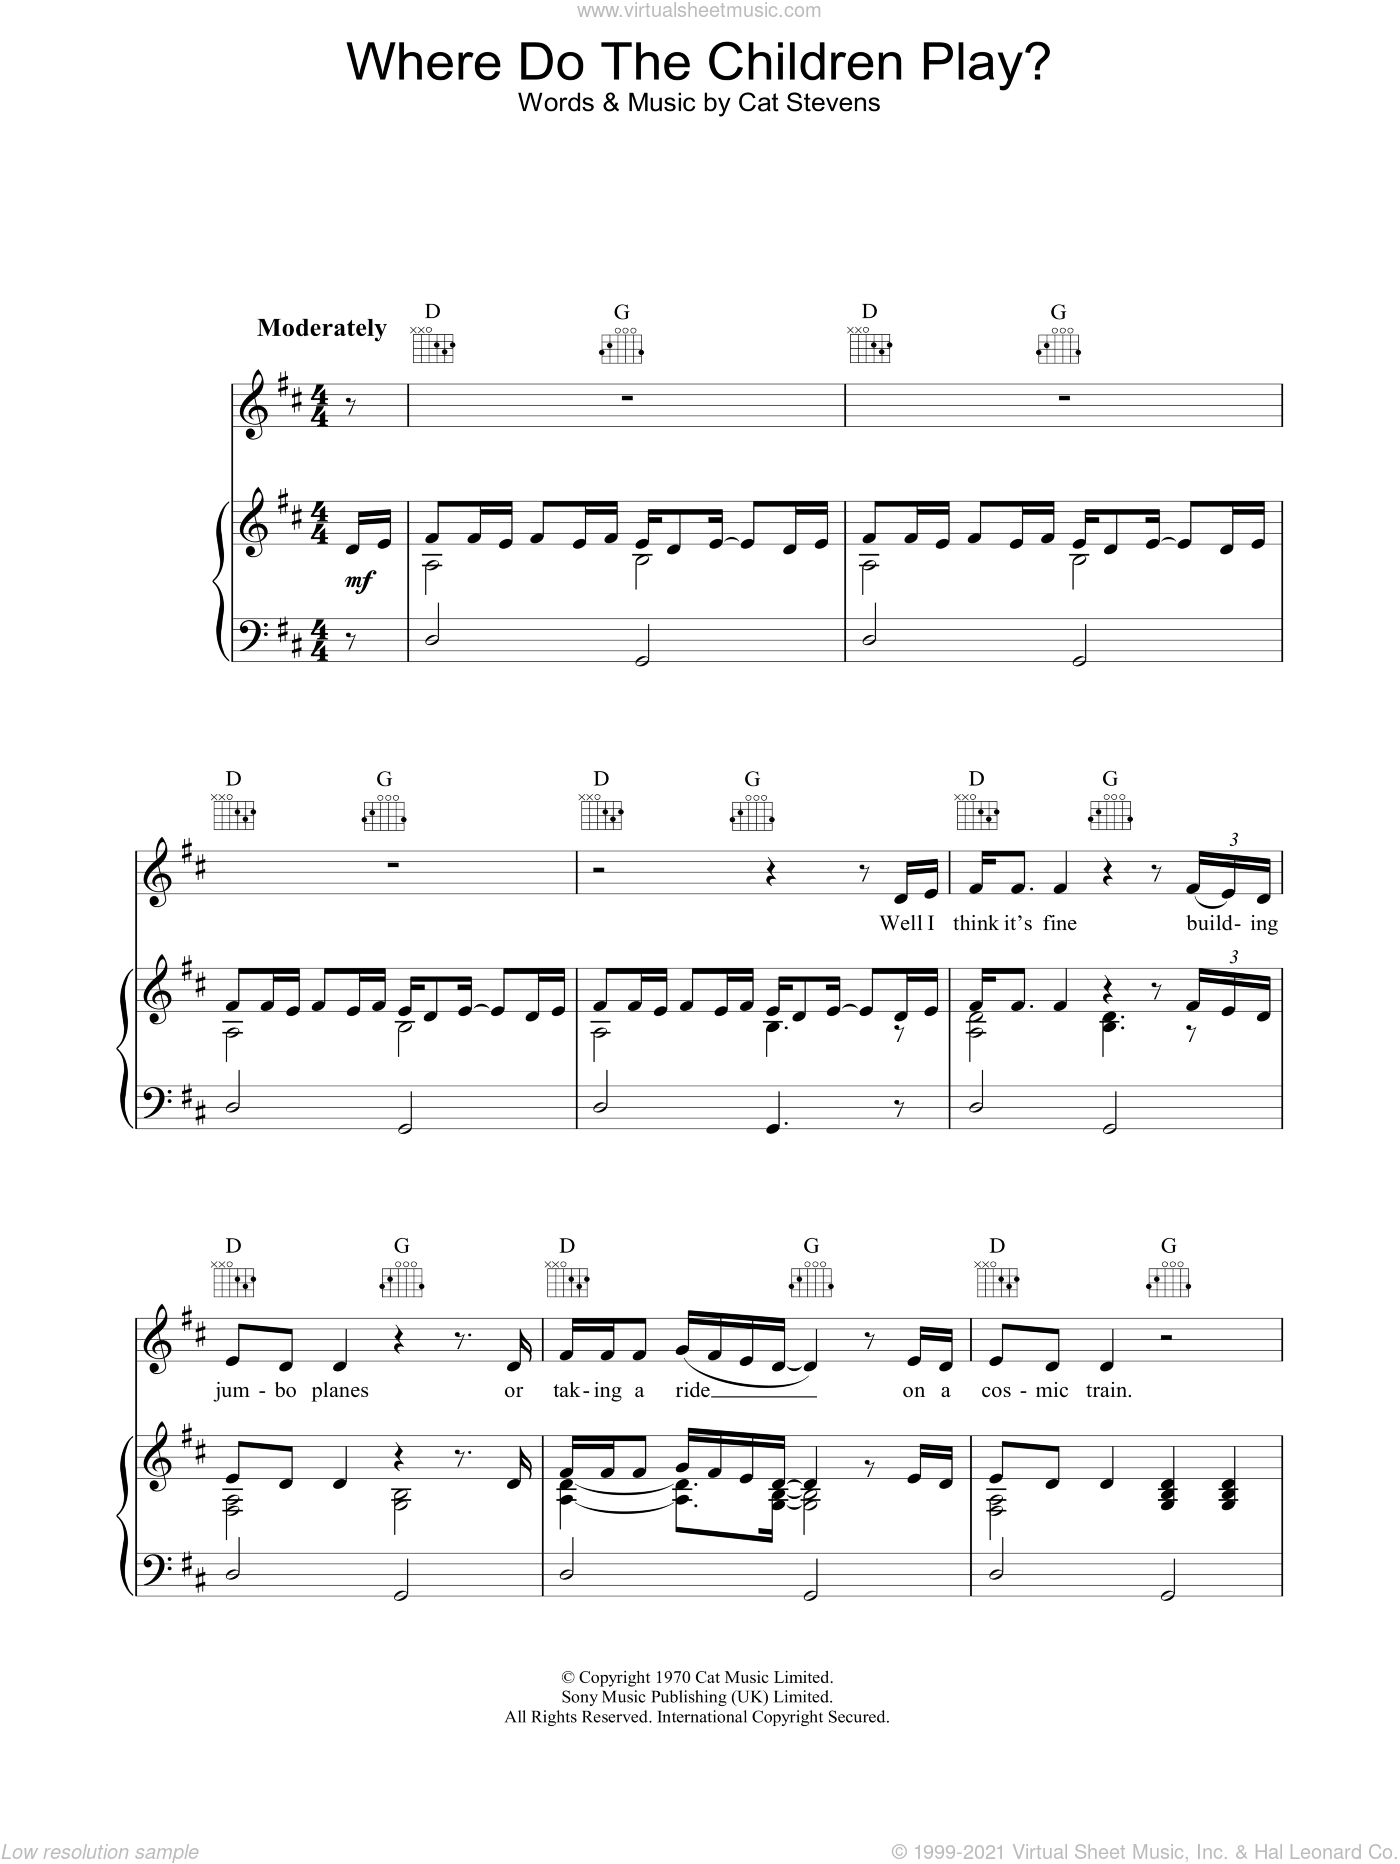 Where Do The Children Play? sheet music for voice, piano or guitar by Cat Stevens, intermediate skill level